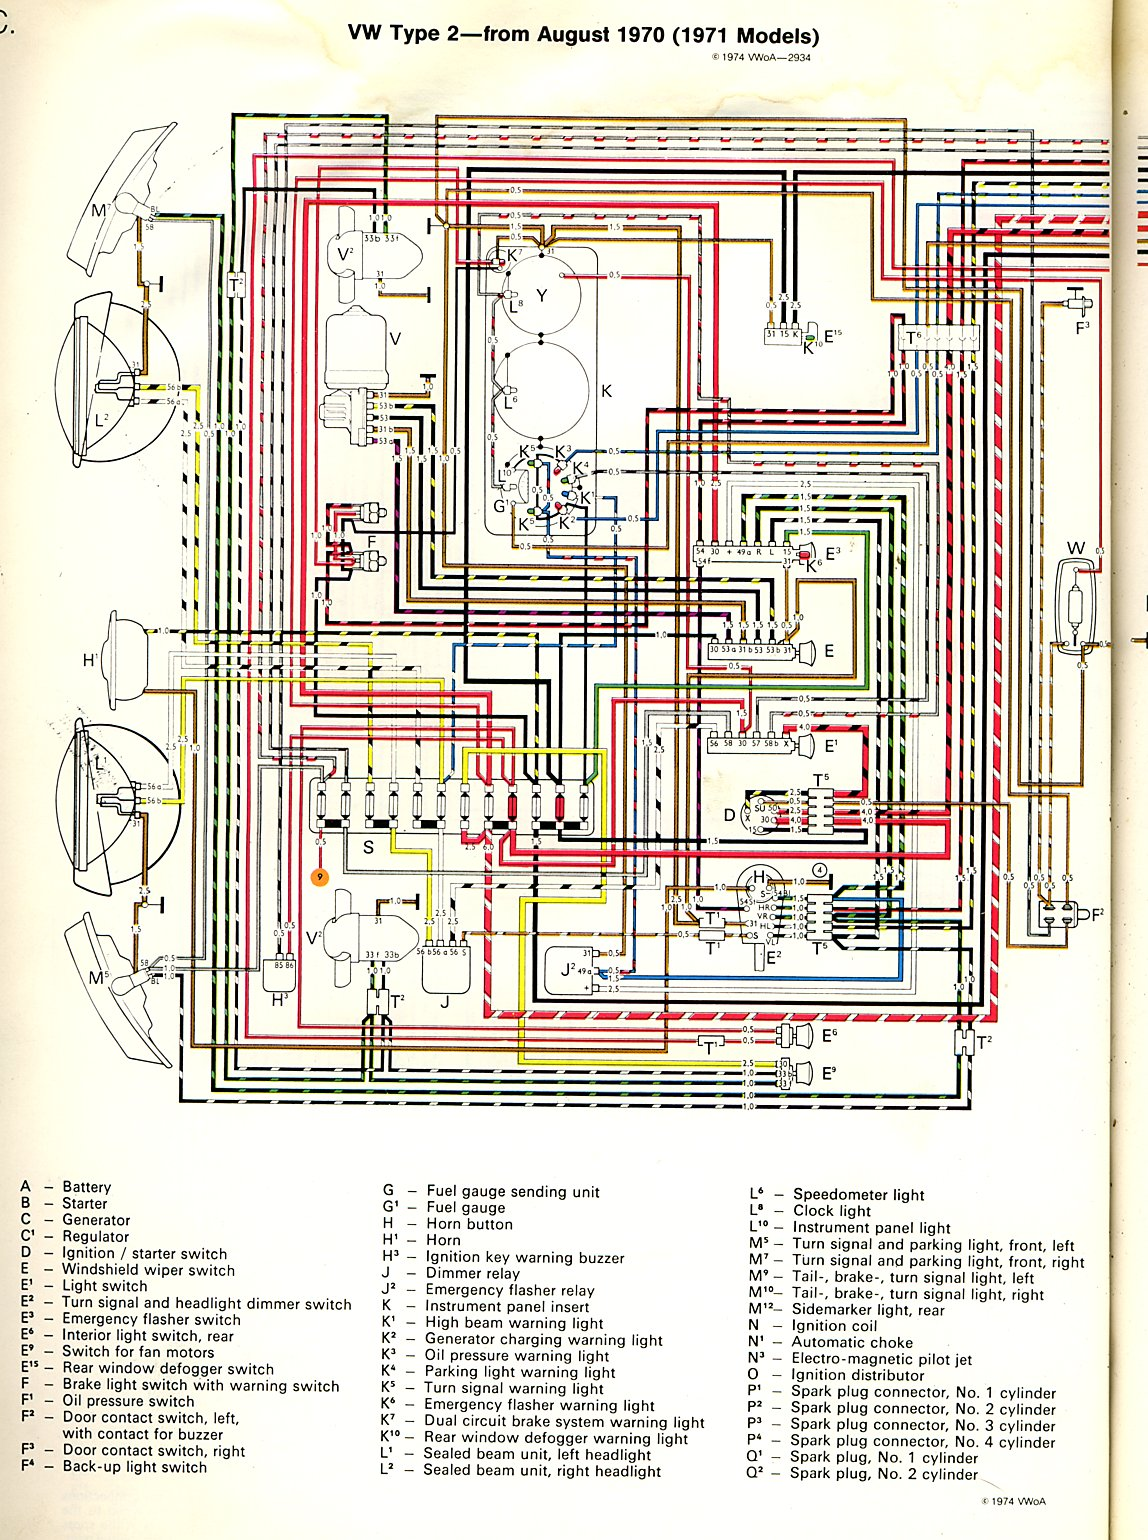 baybus_71a thesamba com type 2 wiring diagrams 1971 vw bus wiring diagram at highcare.asia